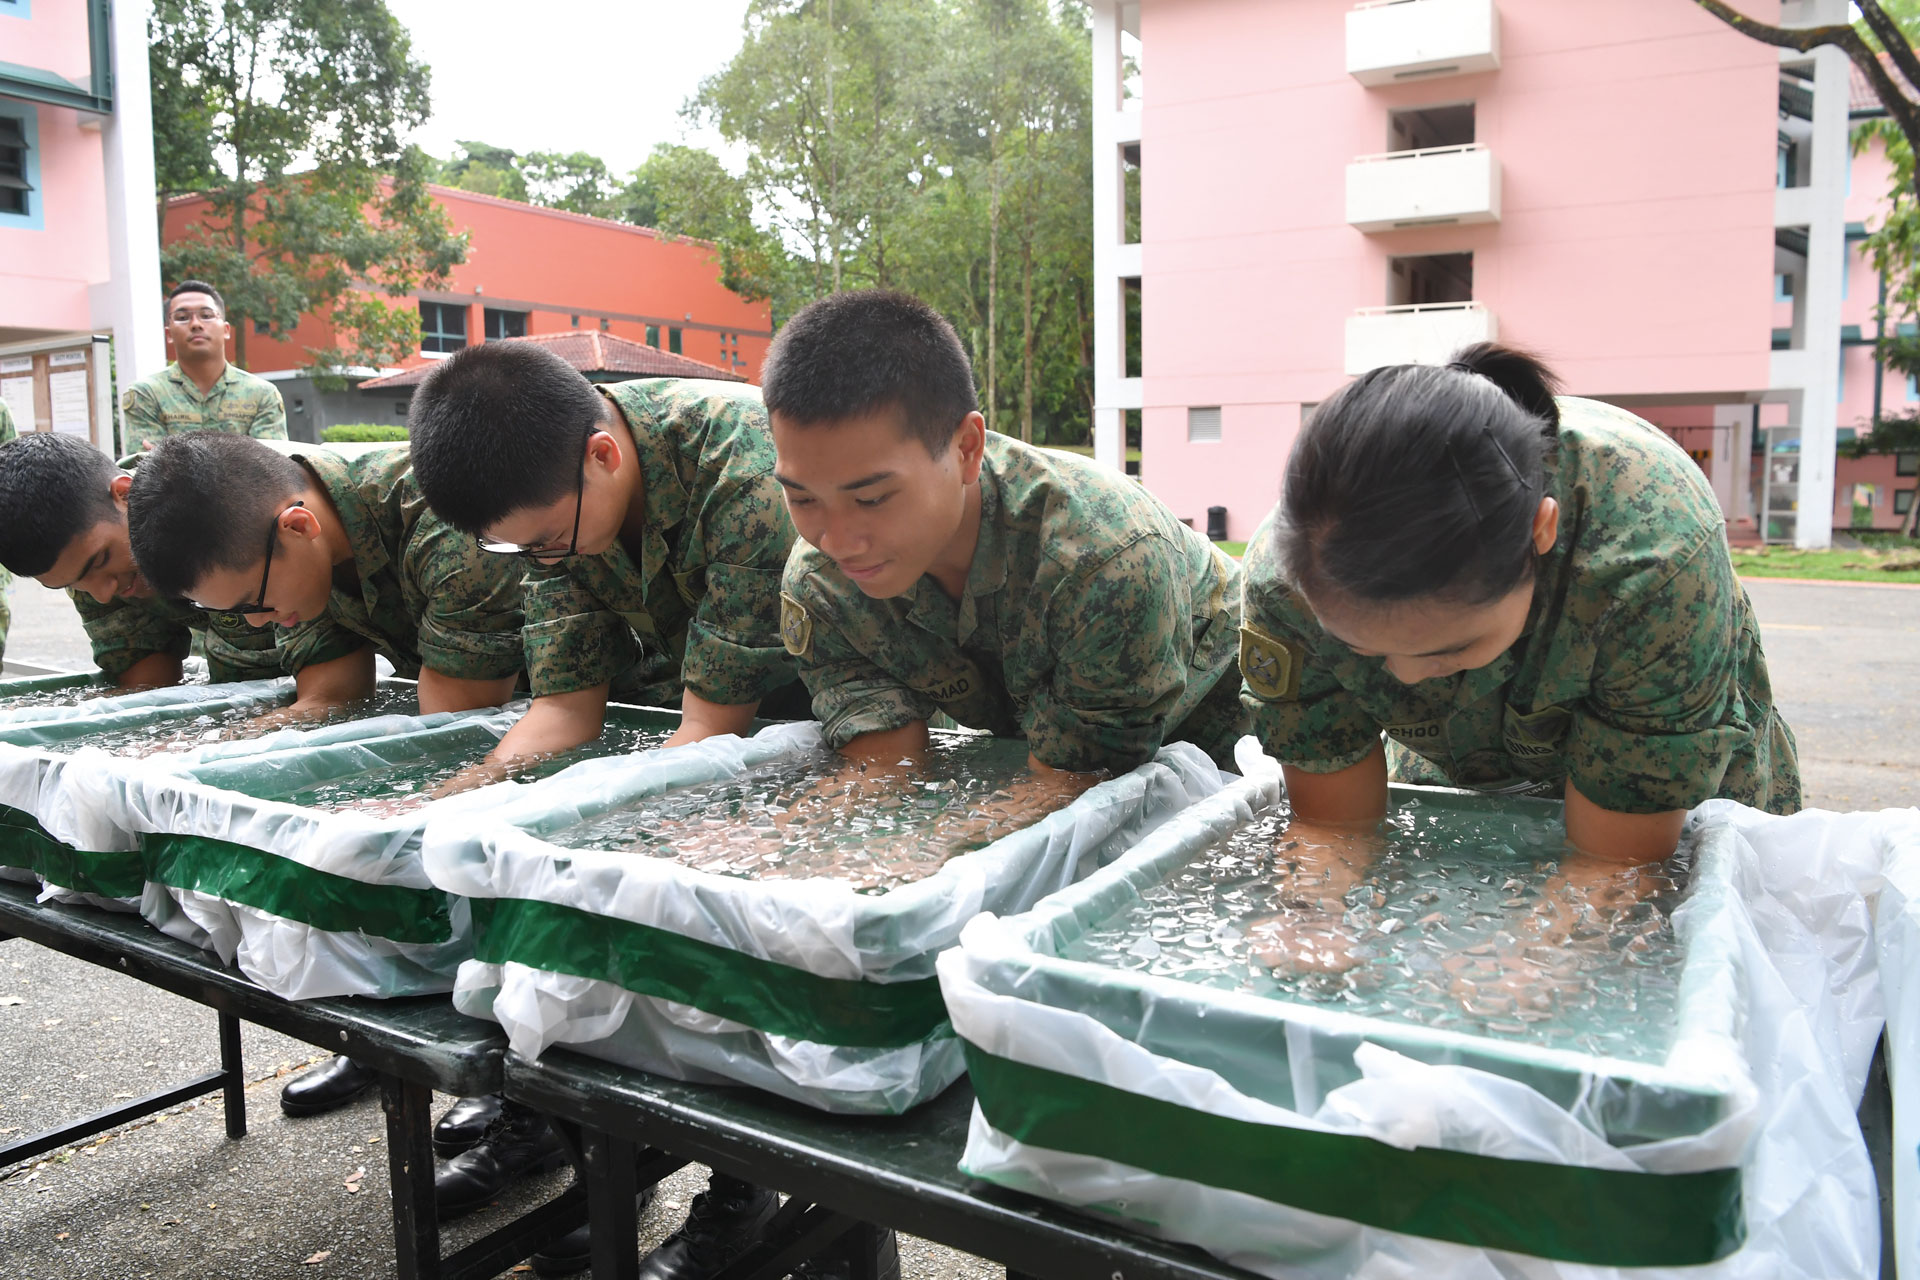 SAF implements additional heat injury prevention measures